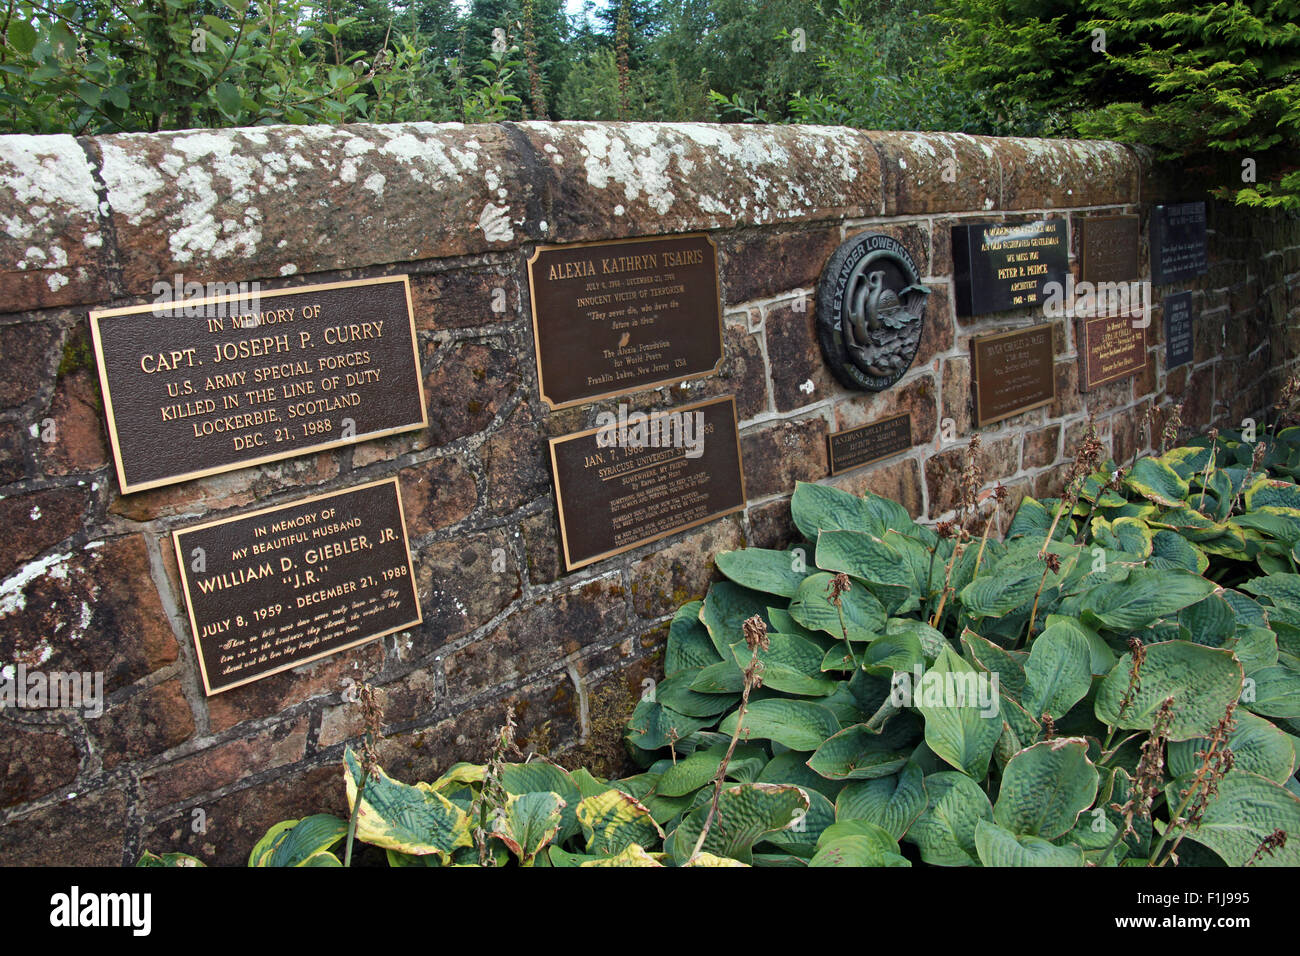 Lockerbie PanAm103 In Rememberance Memorial wall, Scotland Stock Photo